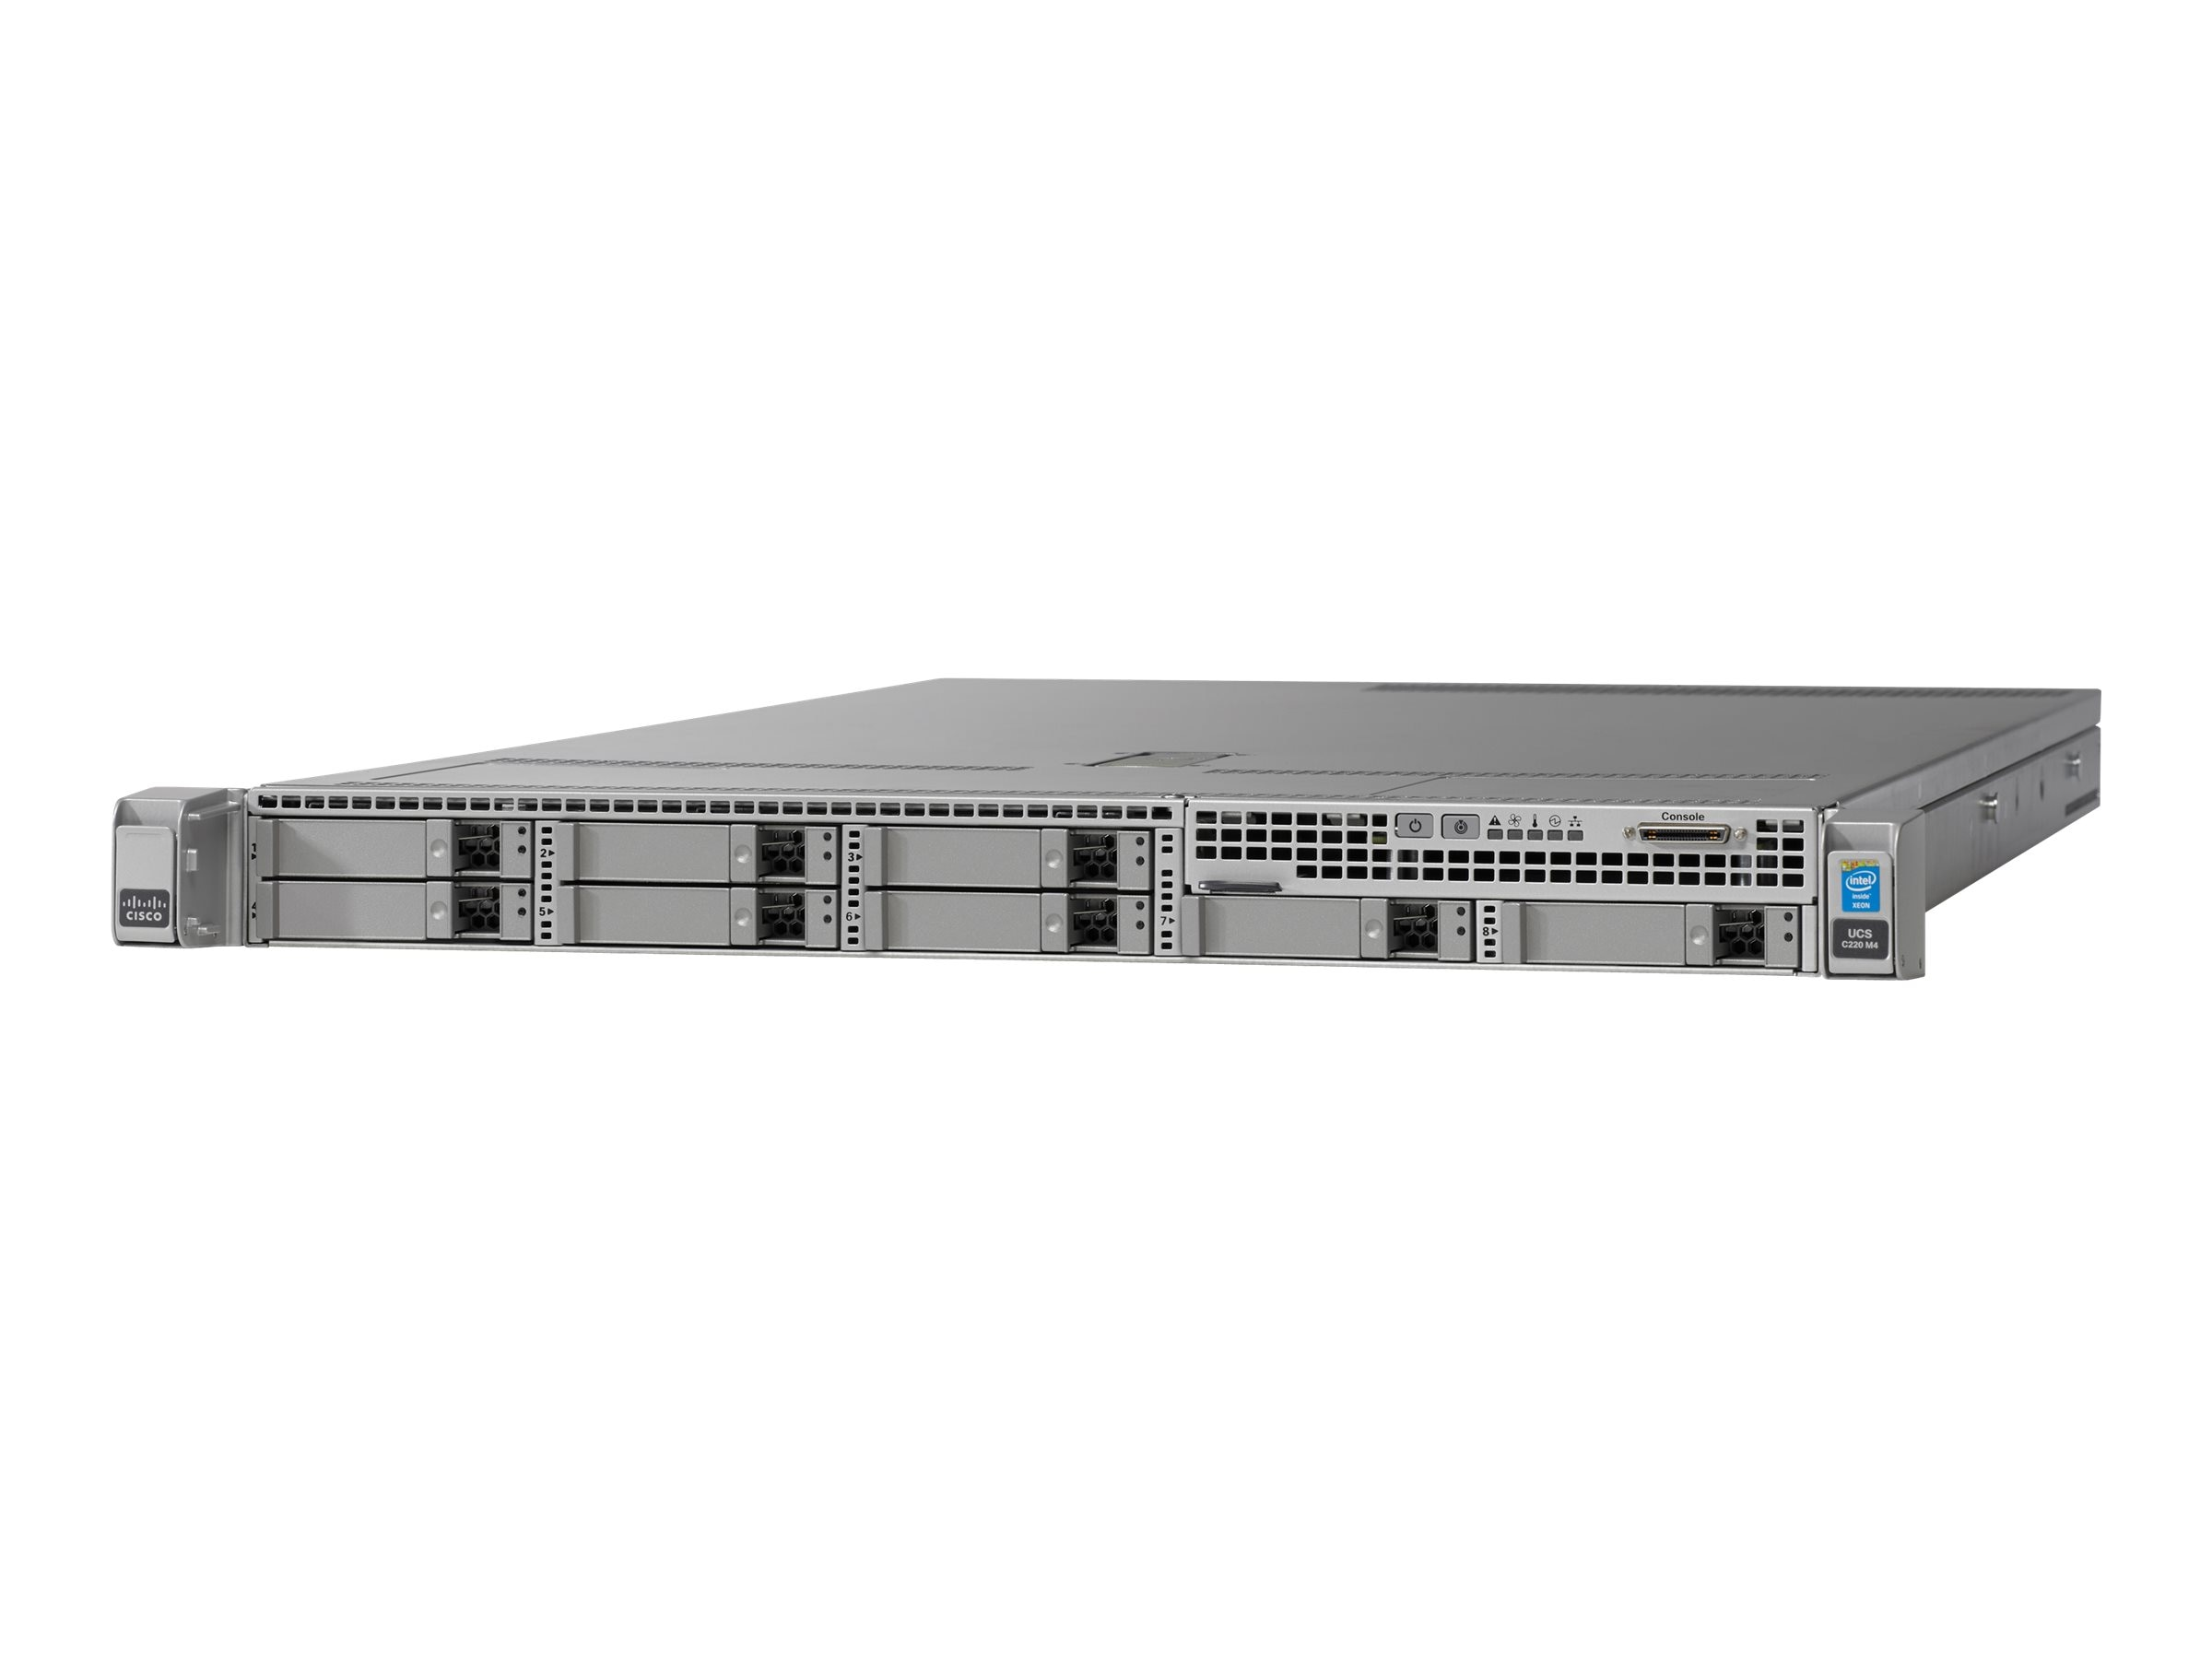 Cisco UCS-SPR-C220M4-BS1 Image 1